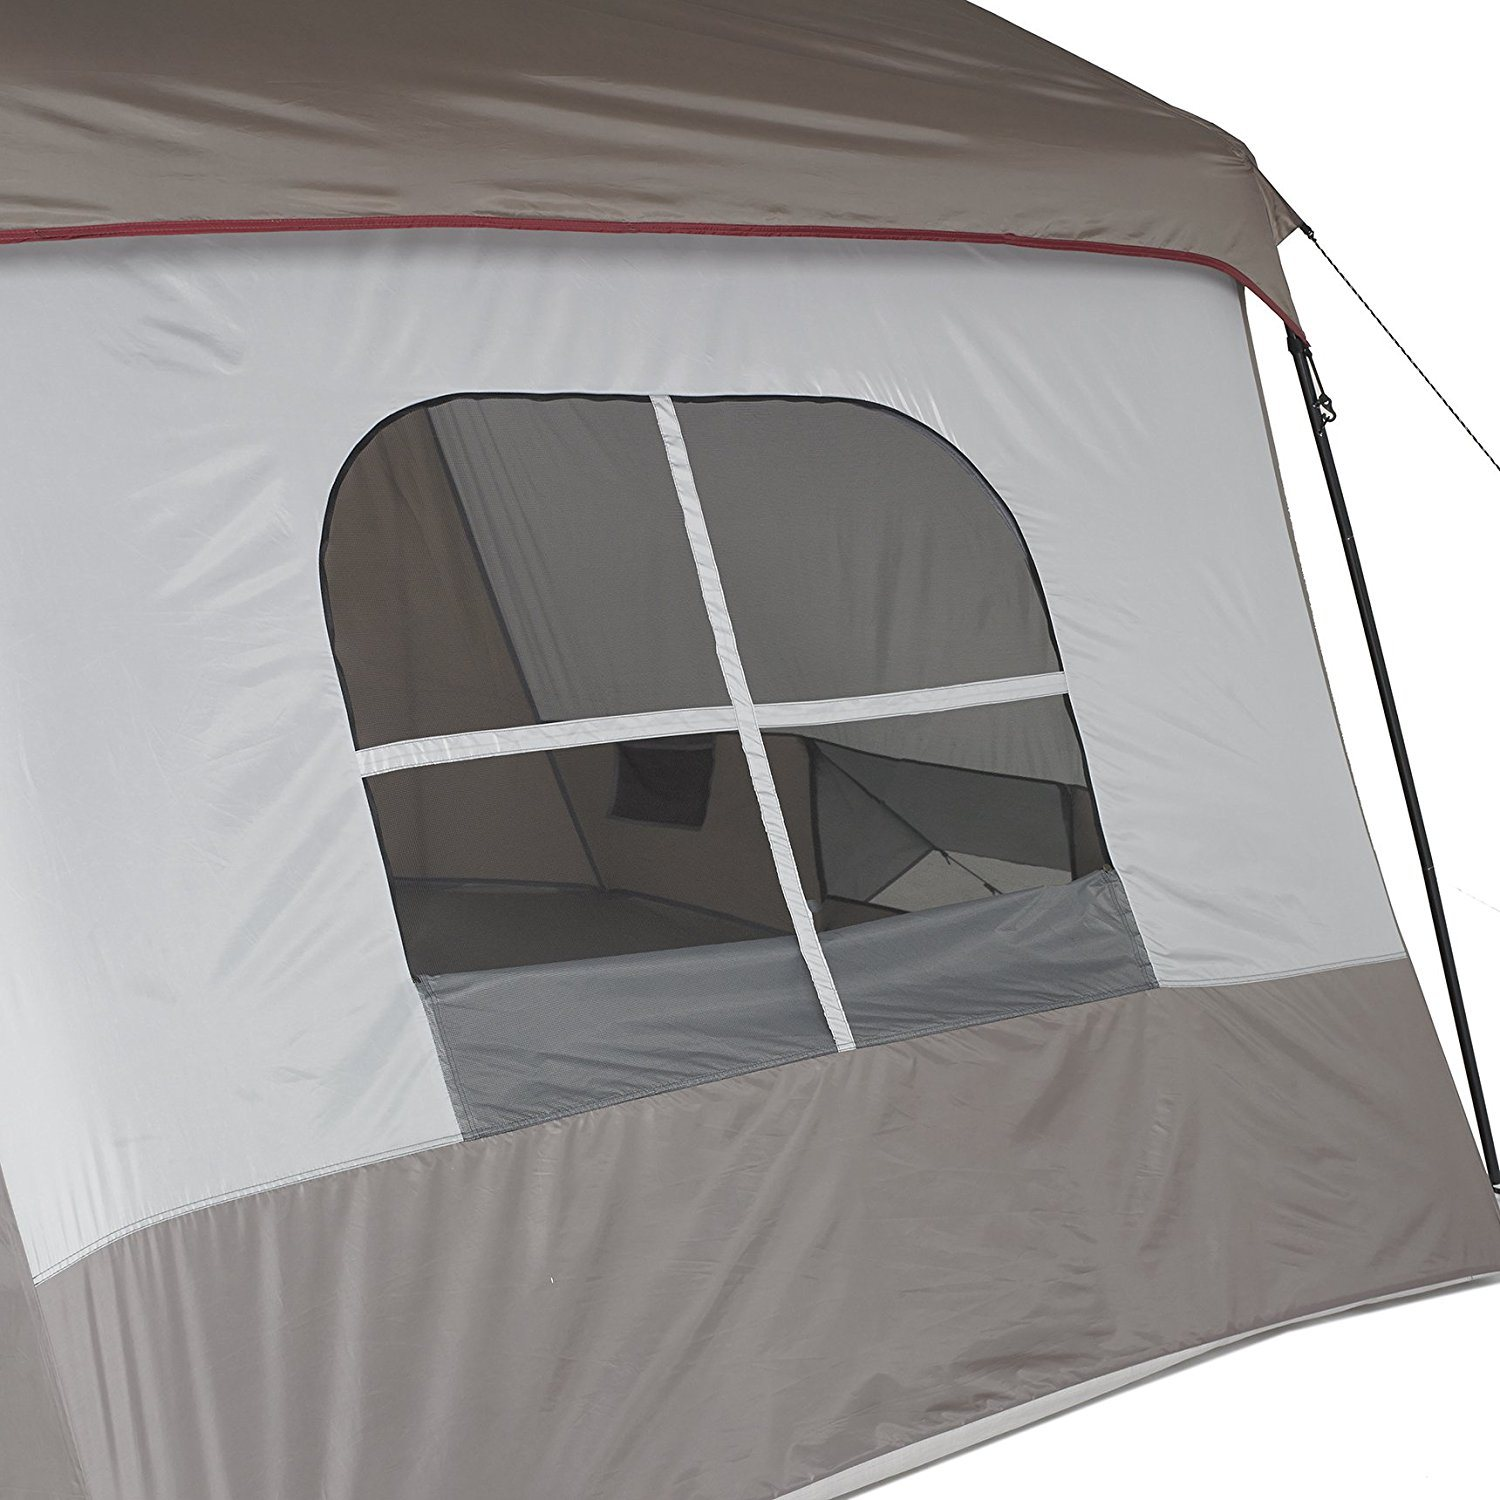 Wenzel 8 Person Klondike family tent window & Wenzel Klondike 8 Person Family Tent u2013 Review u0026 Rating